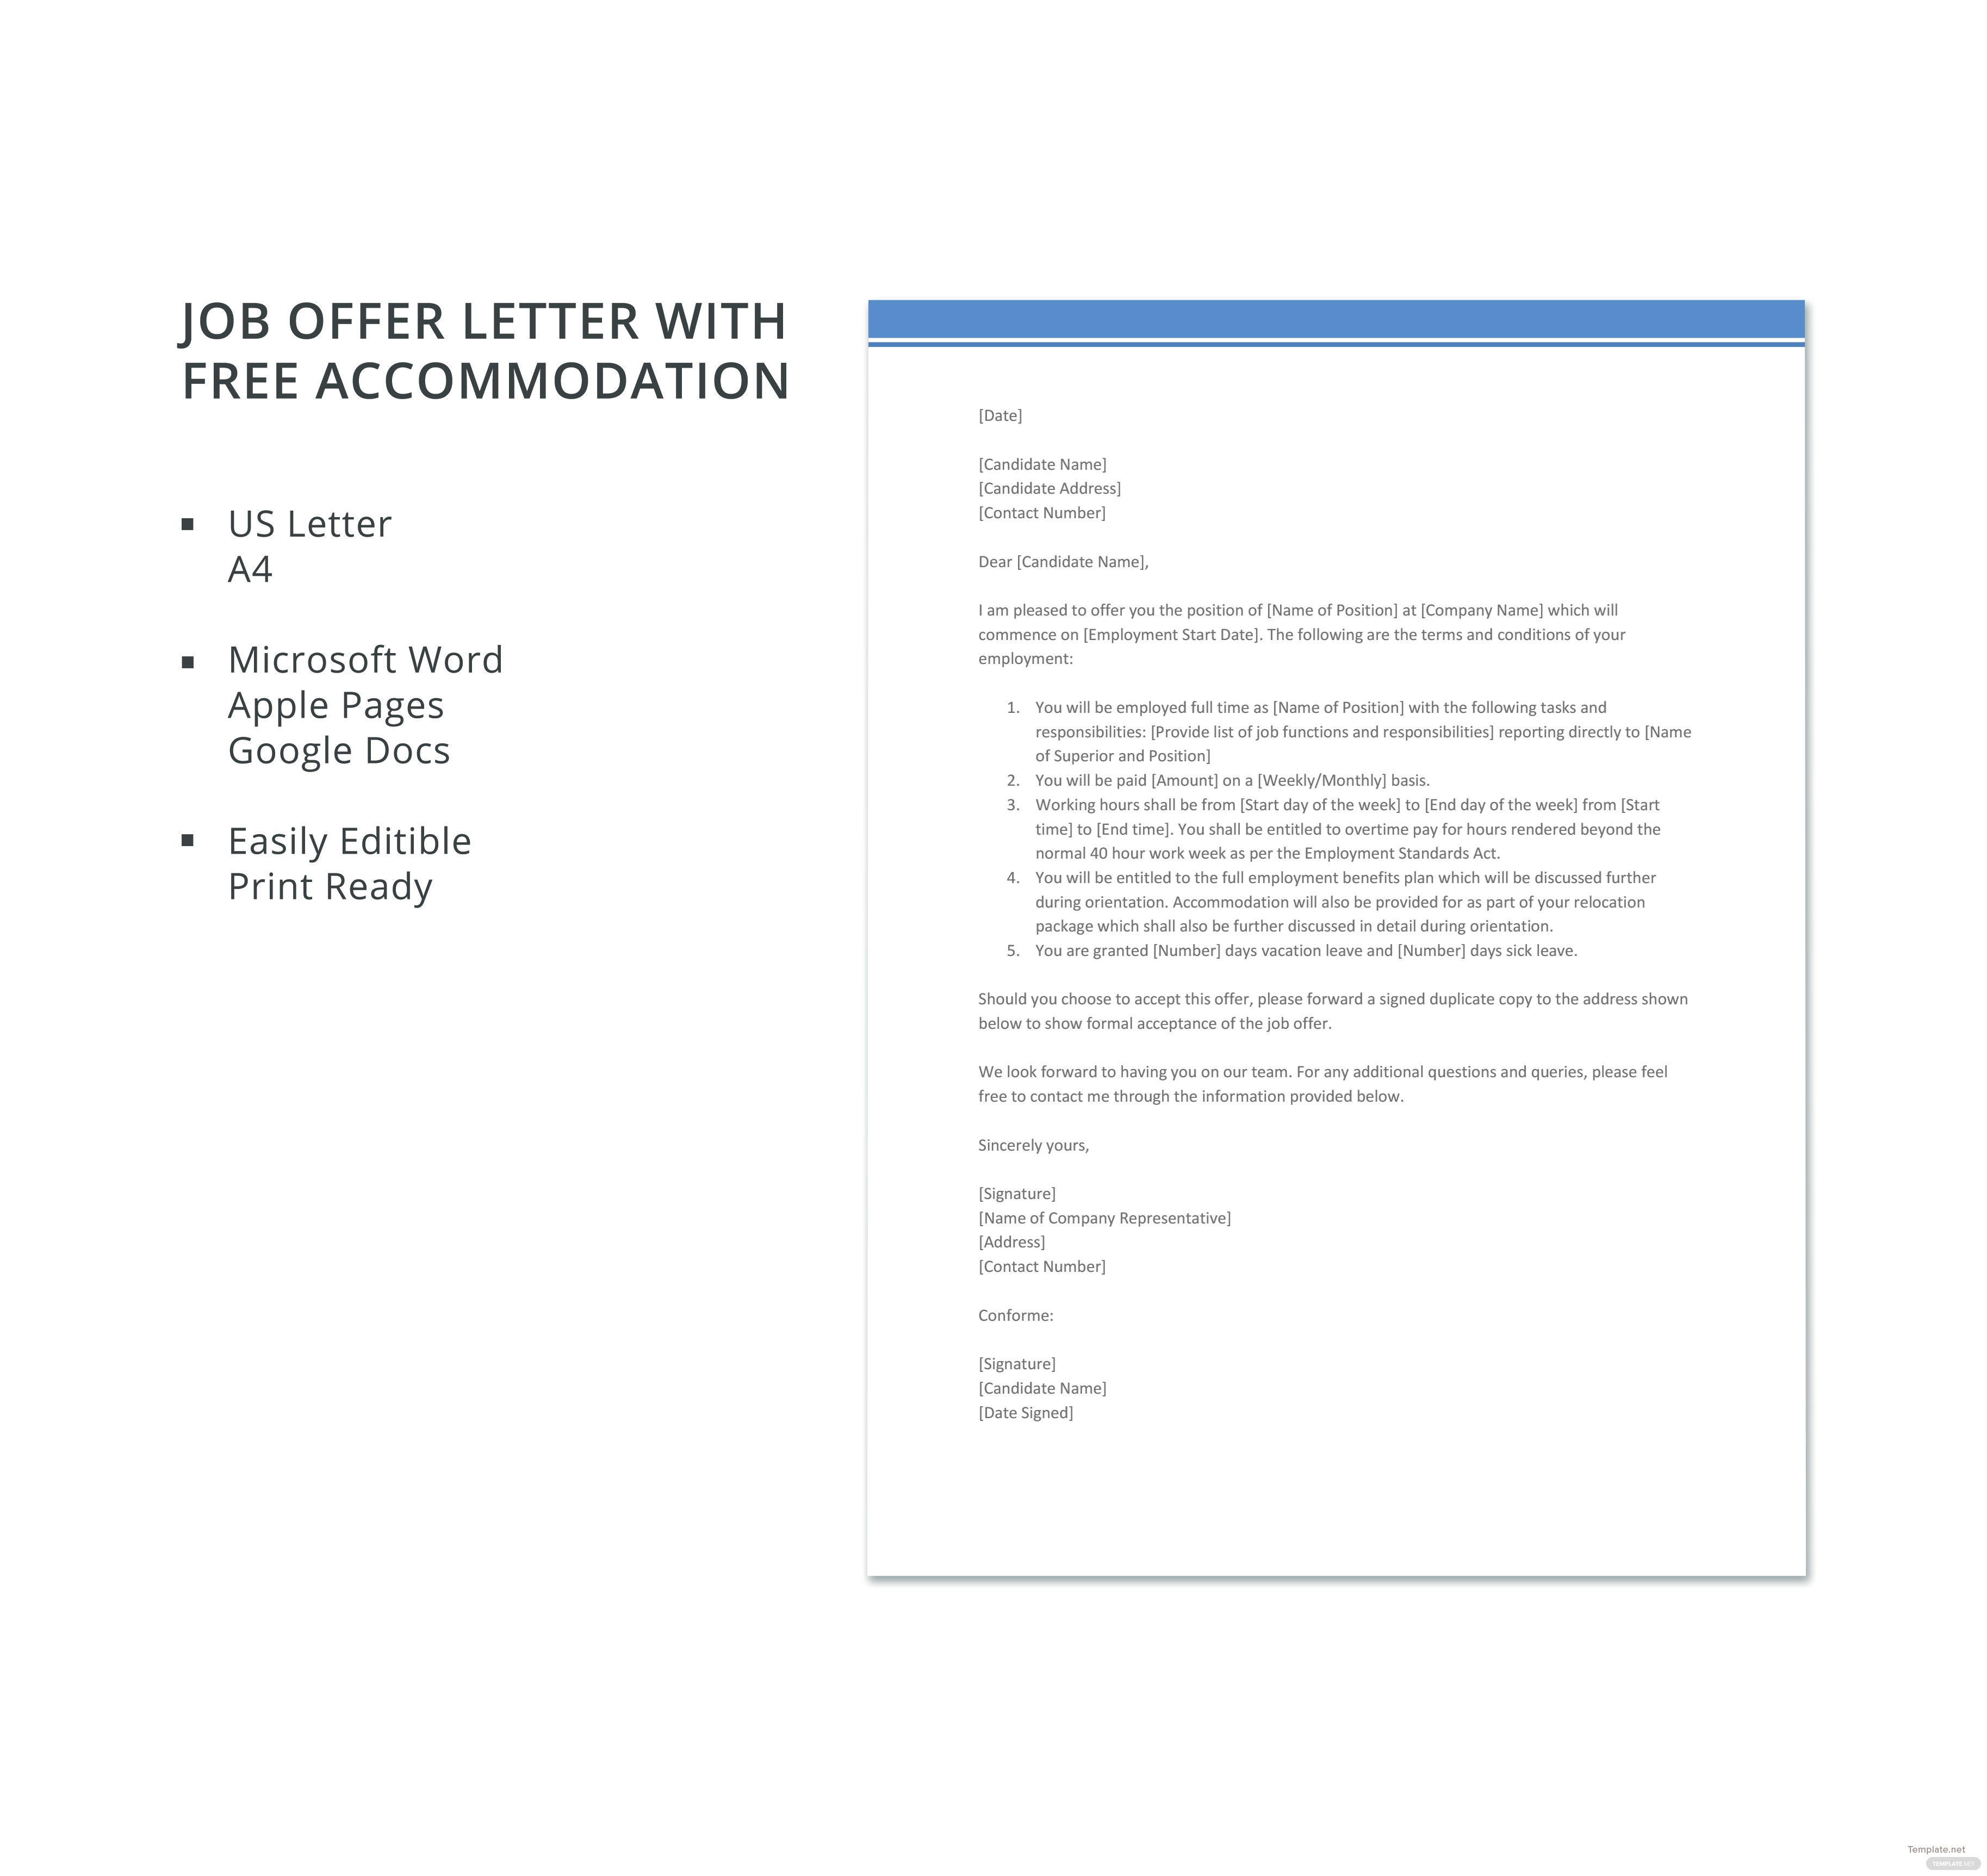 how to write a professional job offer letter